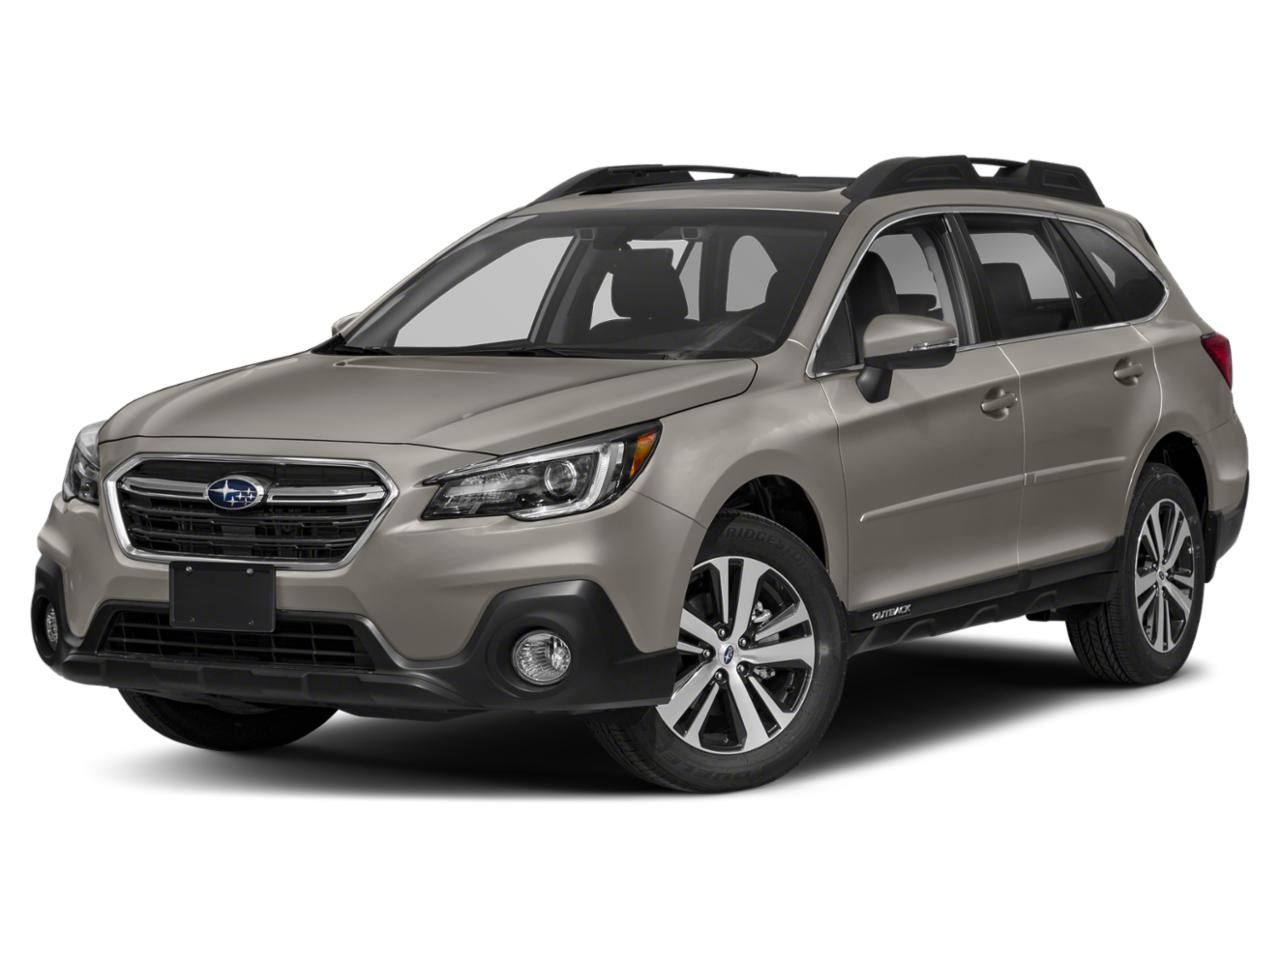 2019 Subaru Outback Vehicle Photo in Cape May Court House, NJ 08210